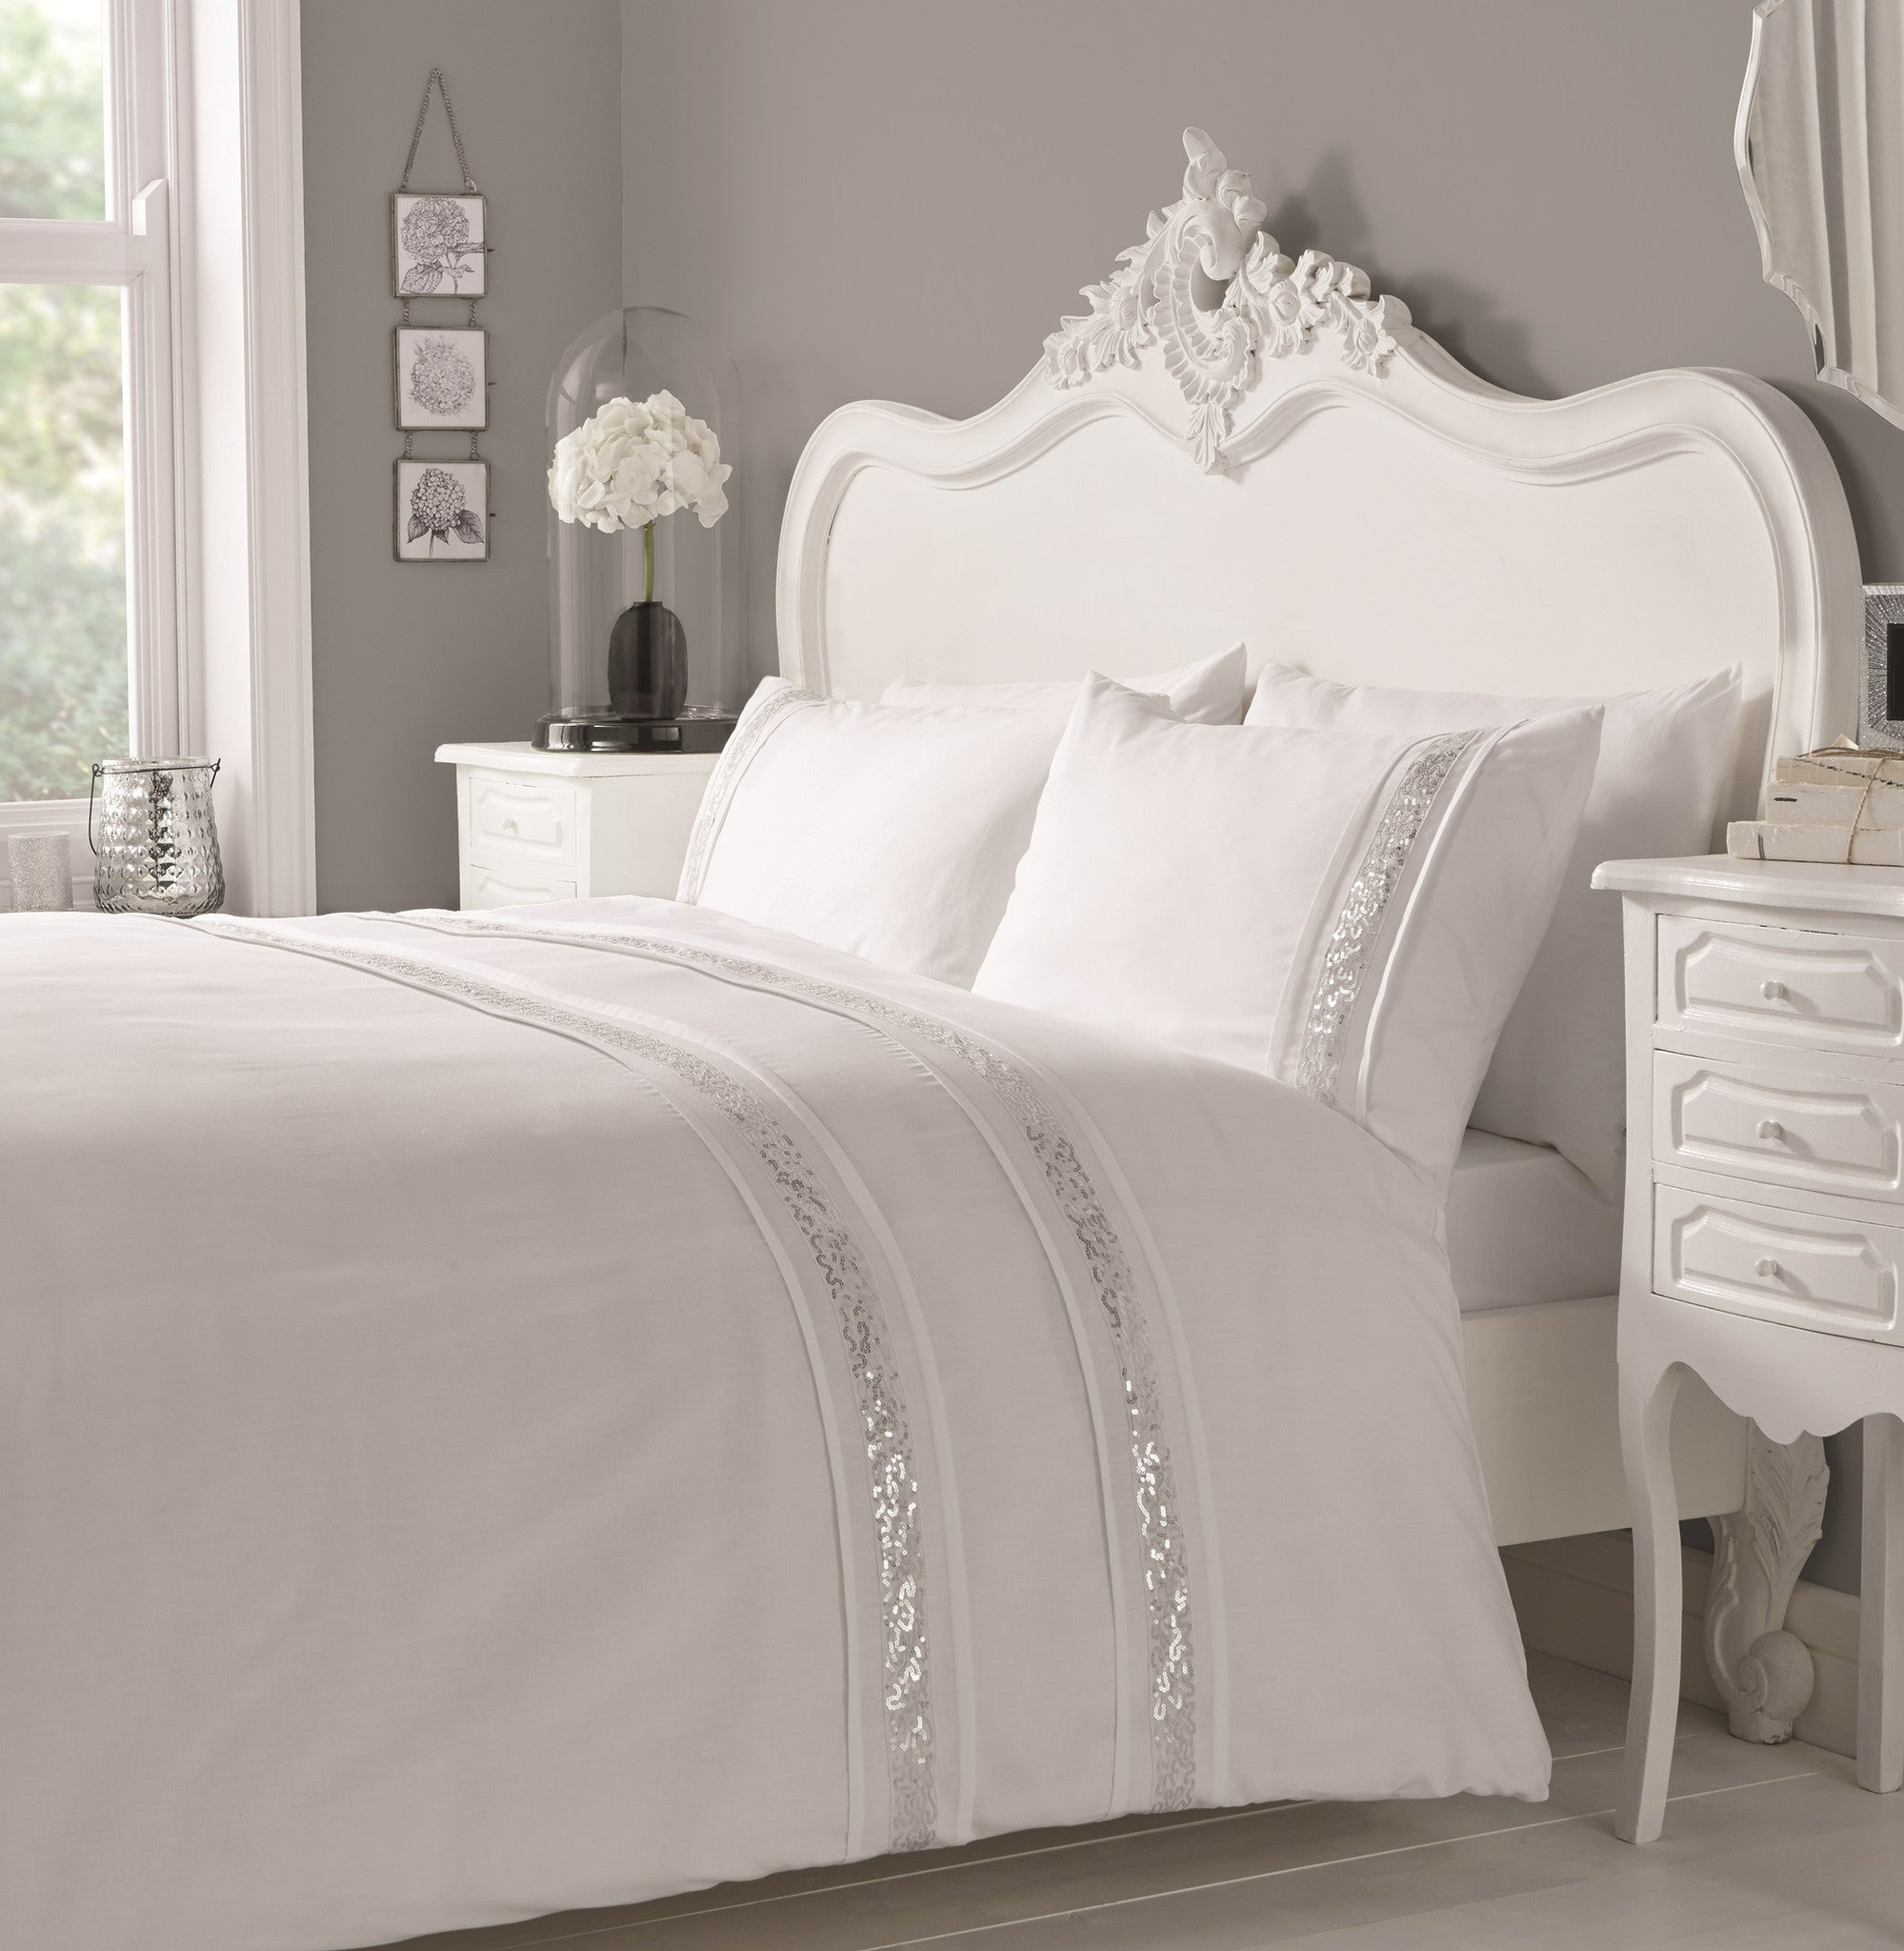 Glamour White with Silver Sequin Stripe Duvet Cover